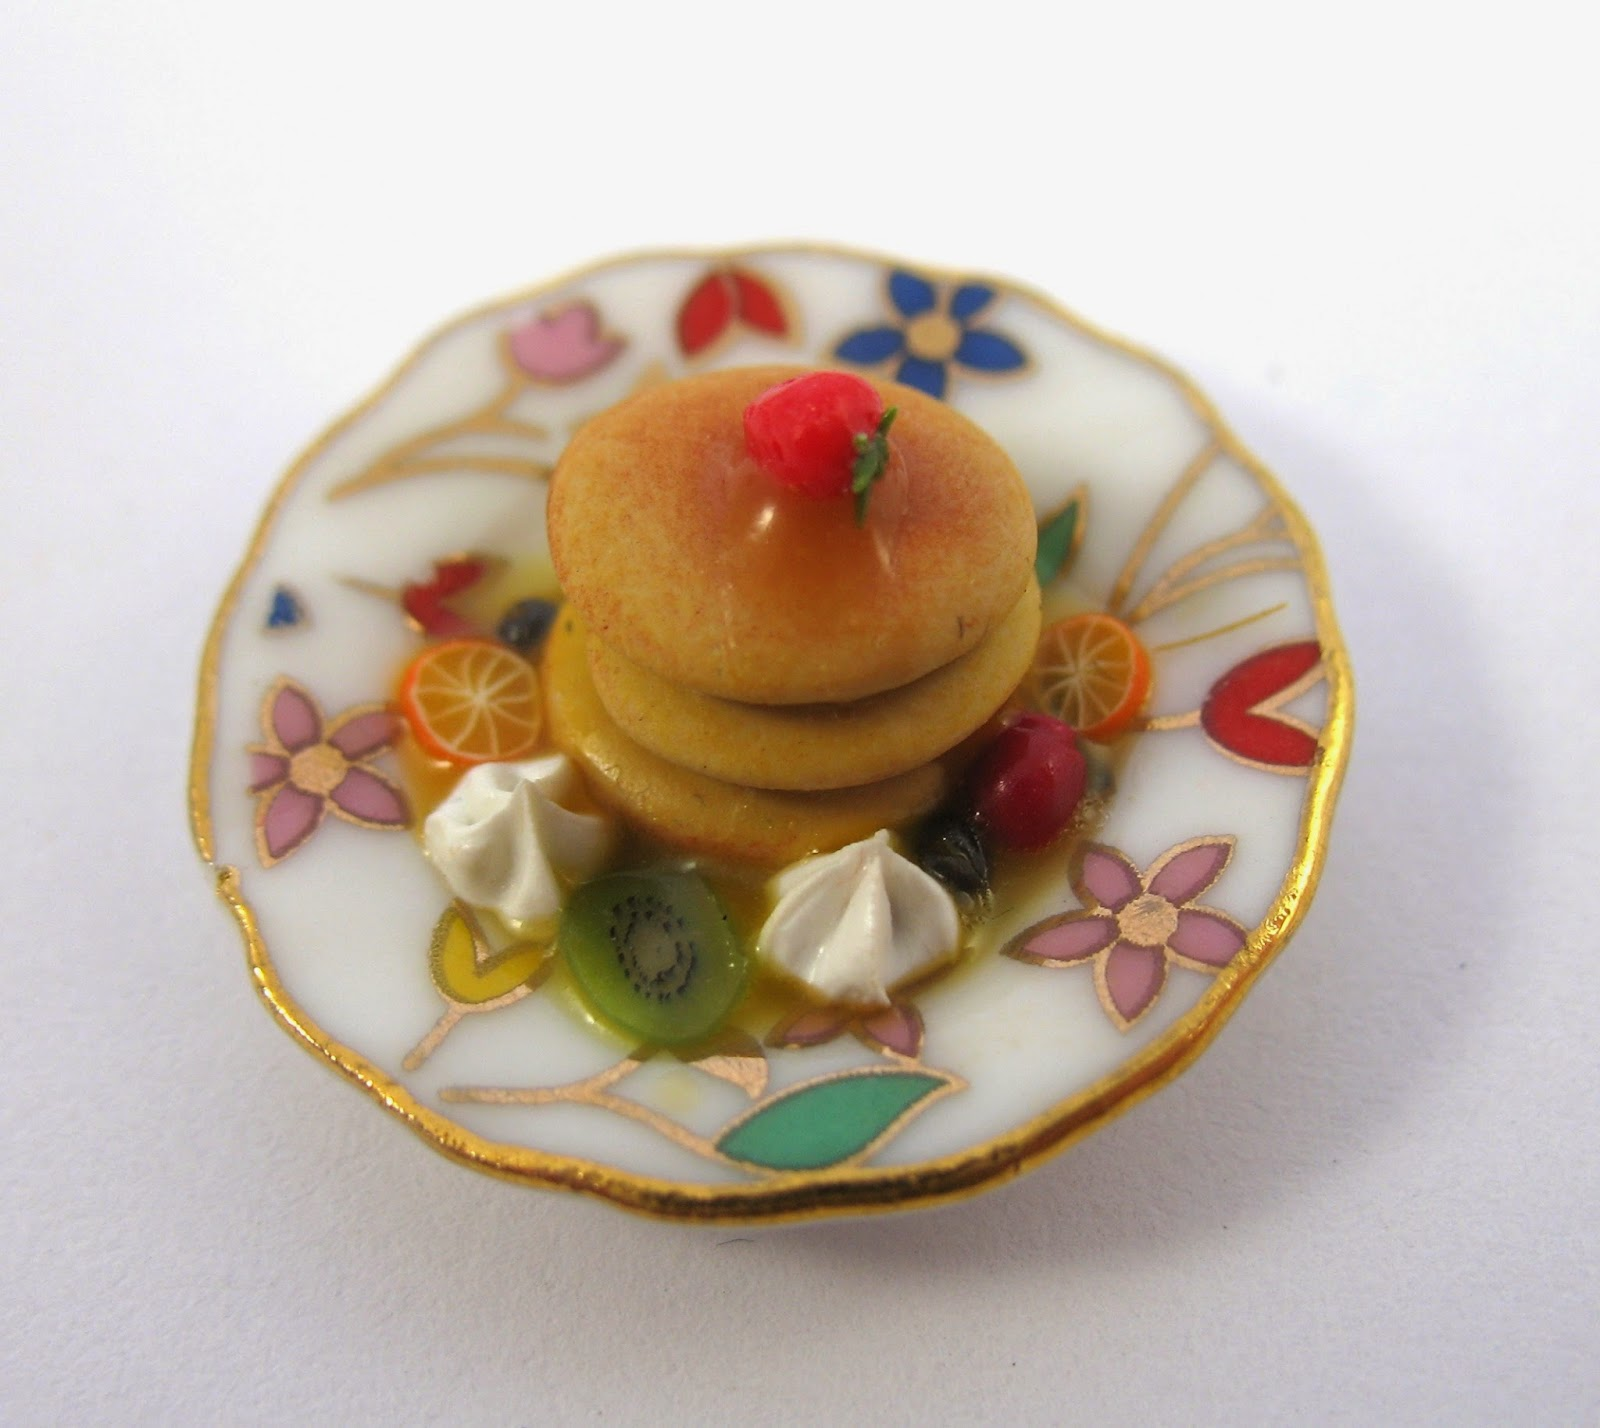 http://littletimewasters.blogspot.co.uk/2015/02/miniature-pancake-tutorial.html